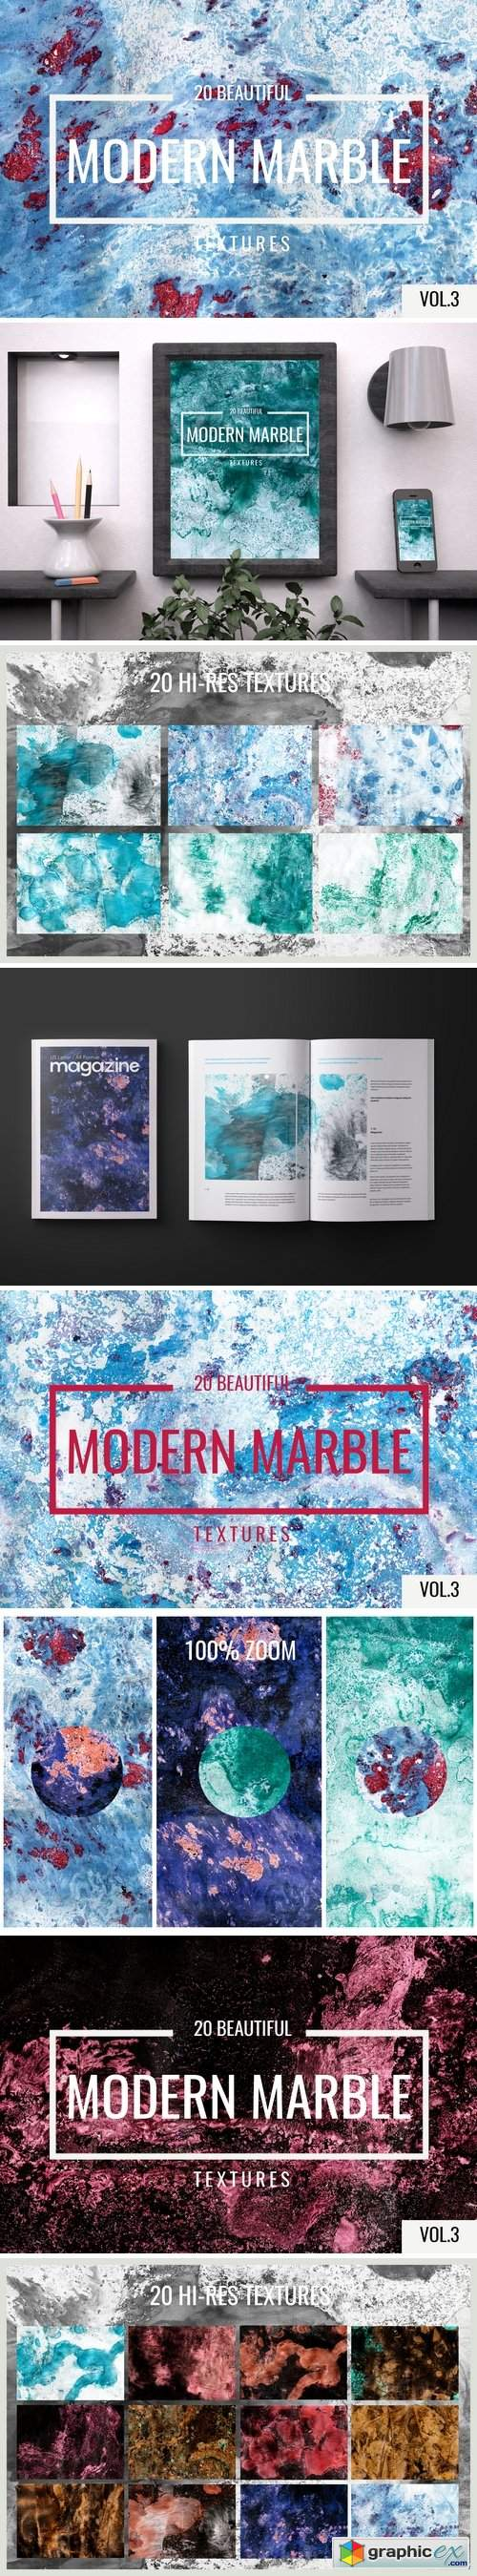 Modern marble vol.3 textures backgrounds overlays backdrop